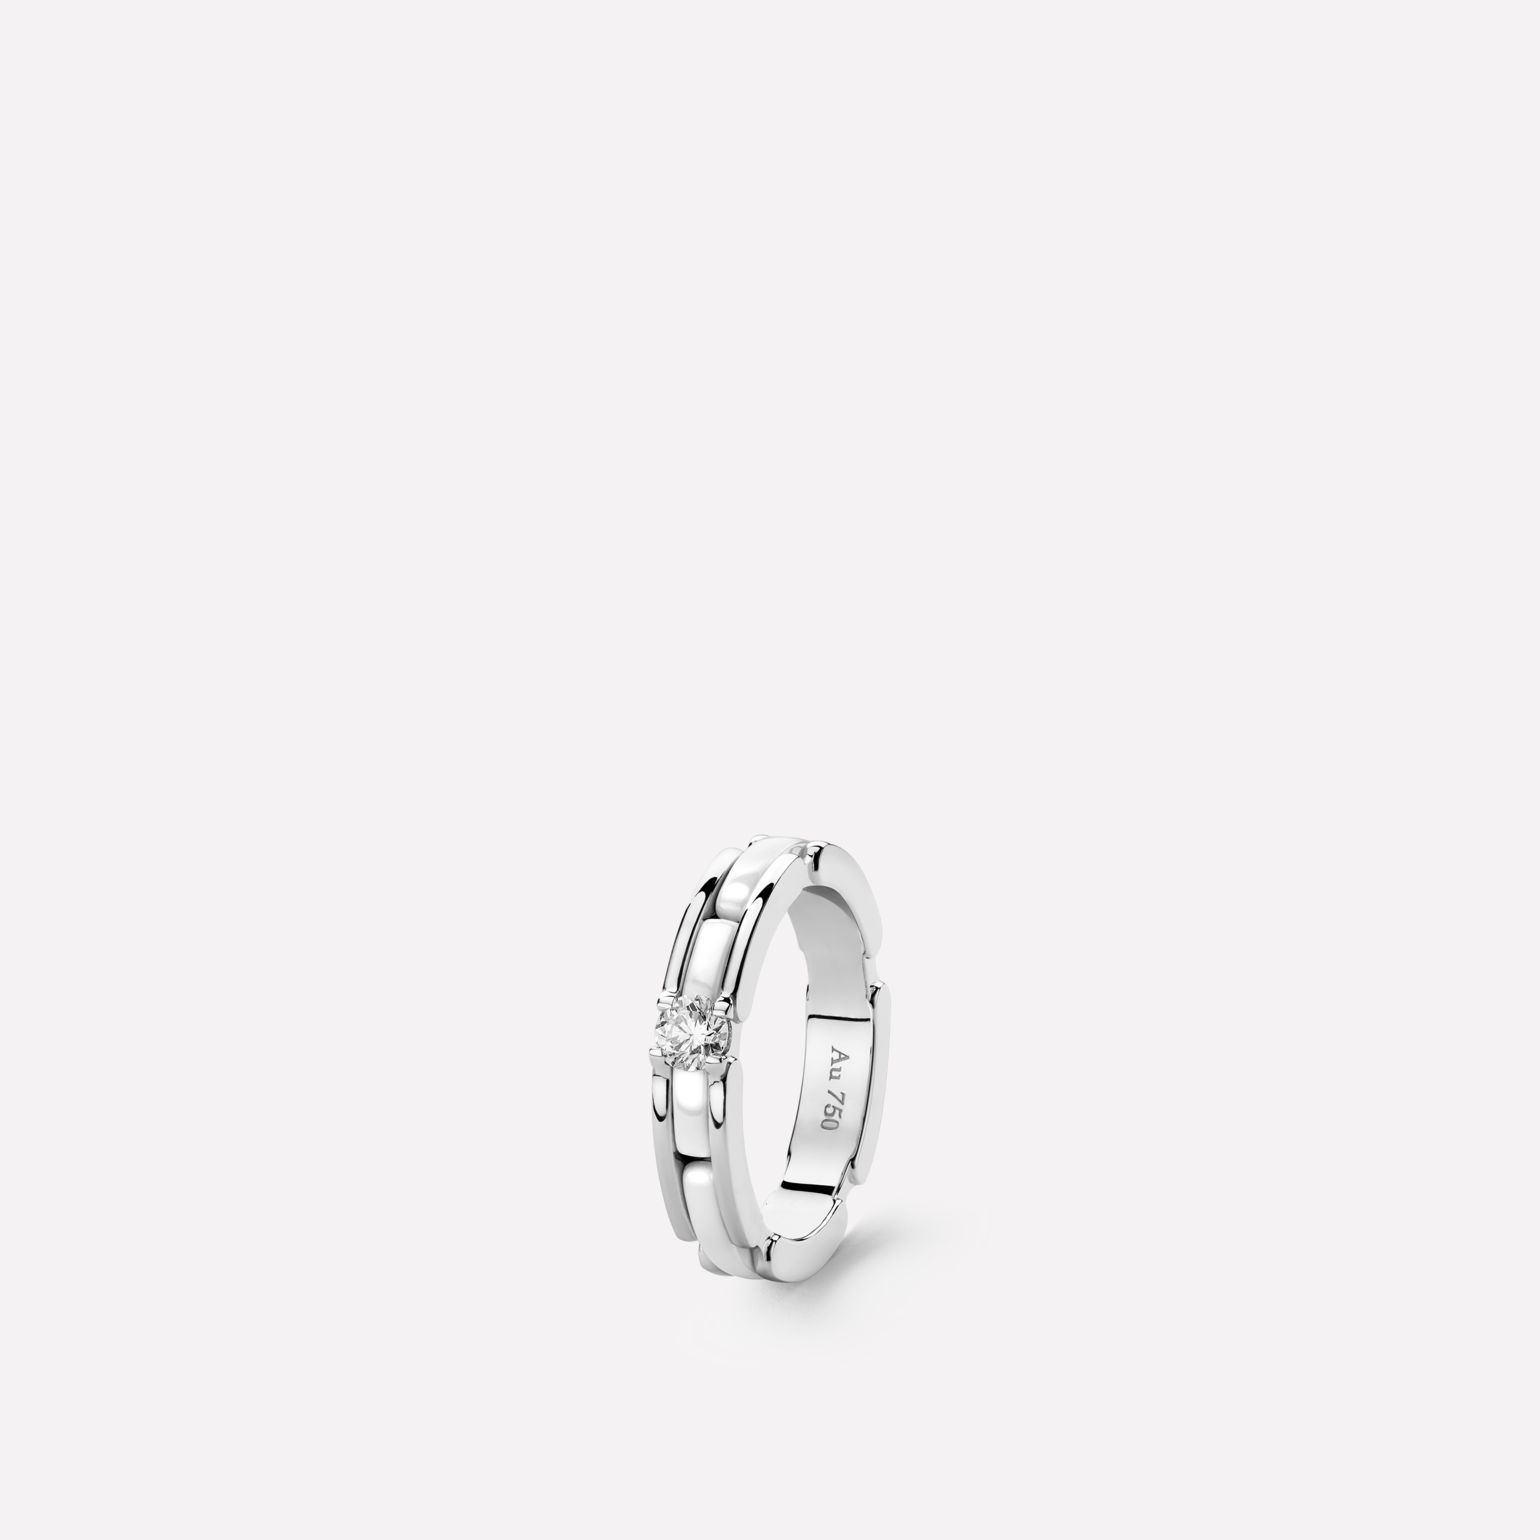 Ultra Ring Ultra ring in white ceramic, 18K white gold and central diamond. Slim version.